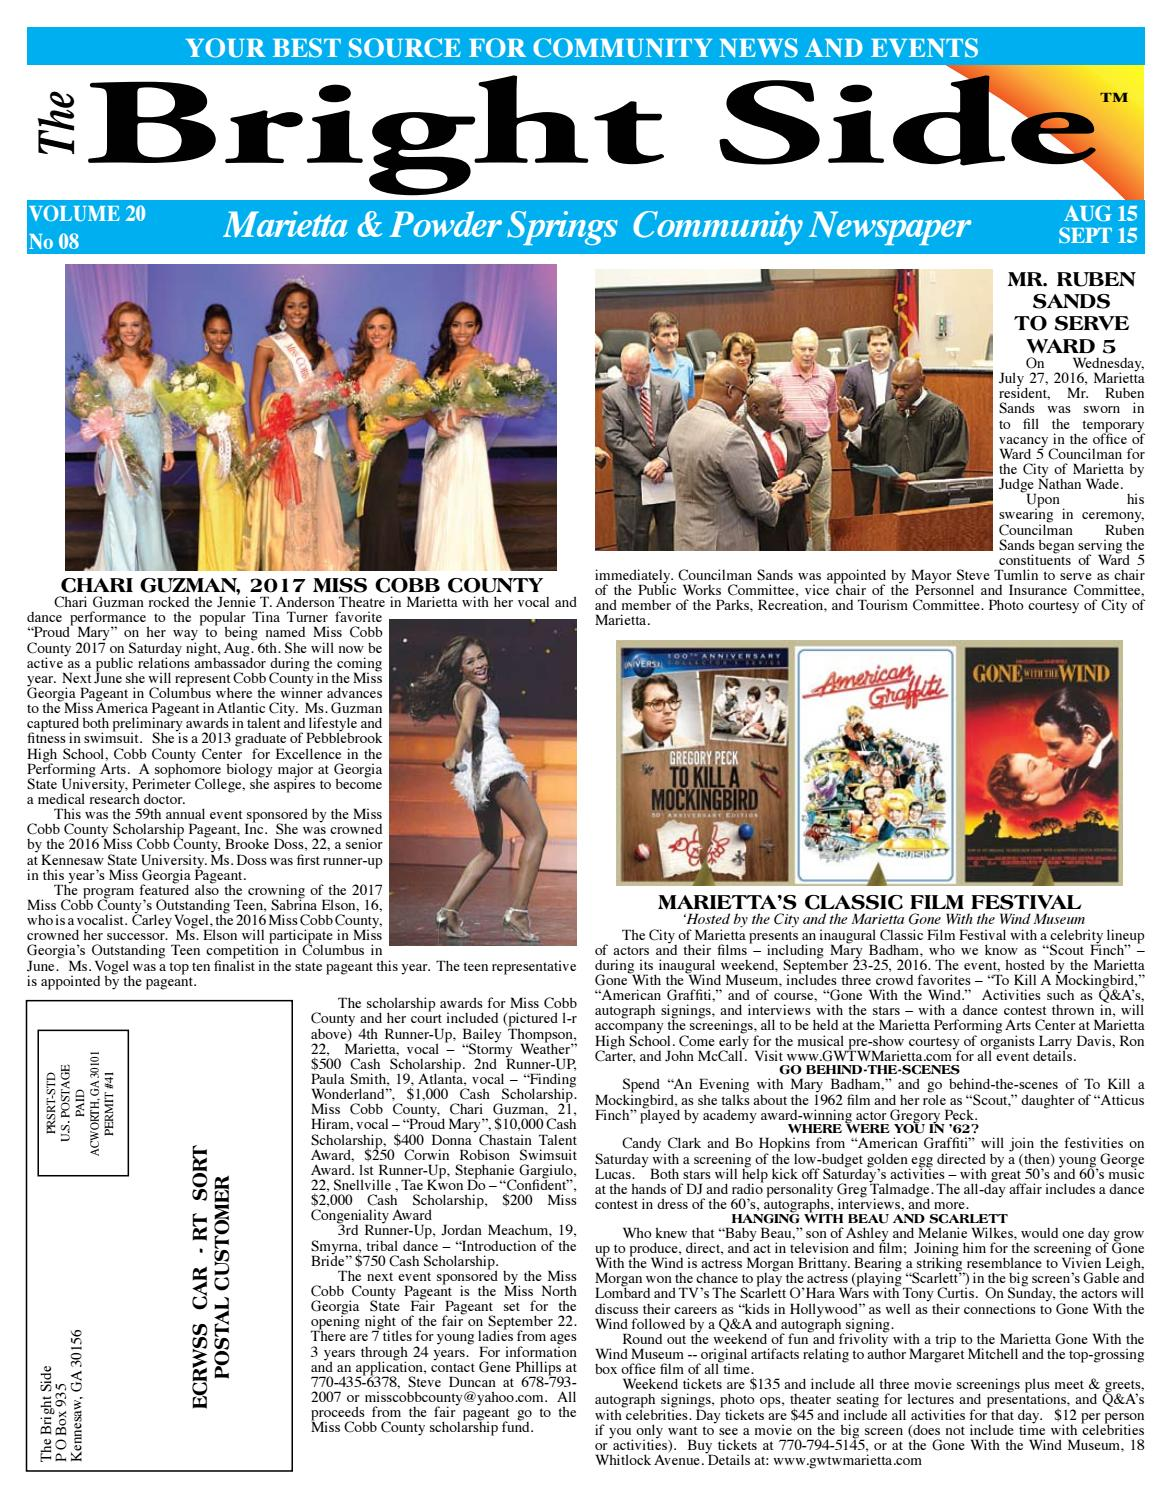 August 2016 mariettapowdersprings newspaper for cobb county by august 2016 mariettapowdersprings newspaper for cobb county by carol grigsby thompson publisher of the bright side community newspapers issuu 1betcityfo Images